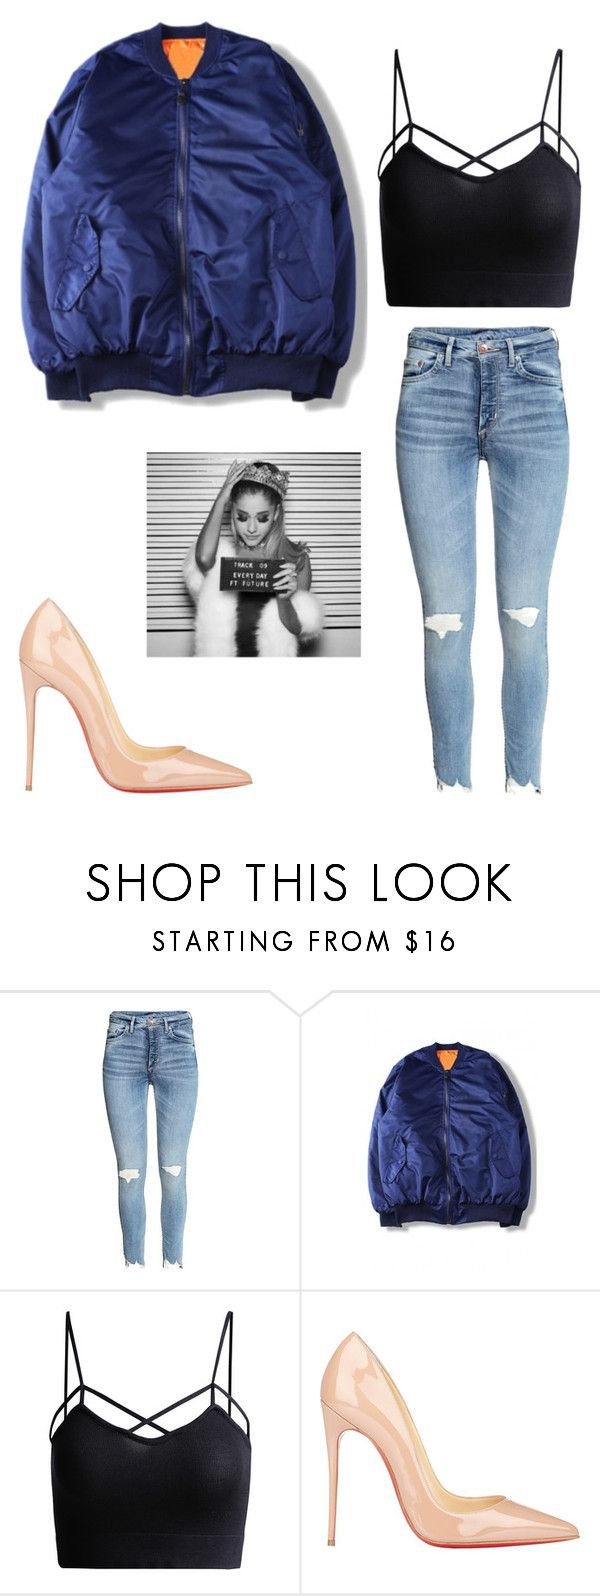 Ariana Grande Everyday Outfit : ariana, grande, everyday, outfit, Outfit, Ideas